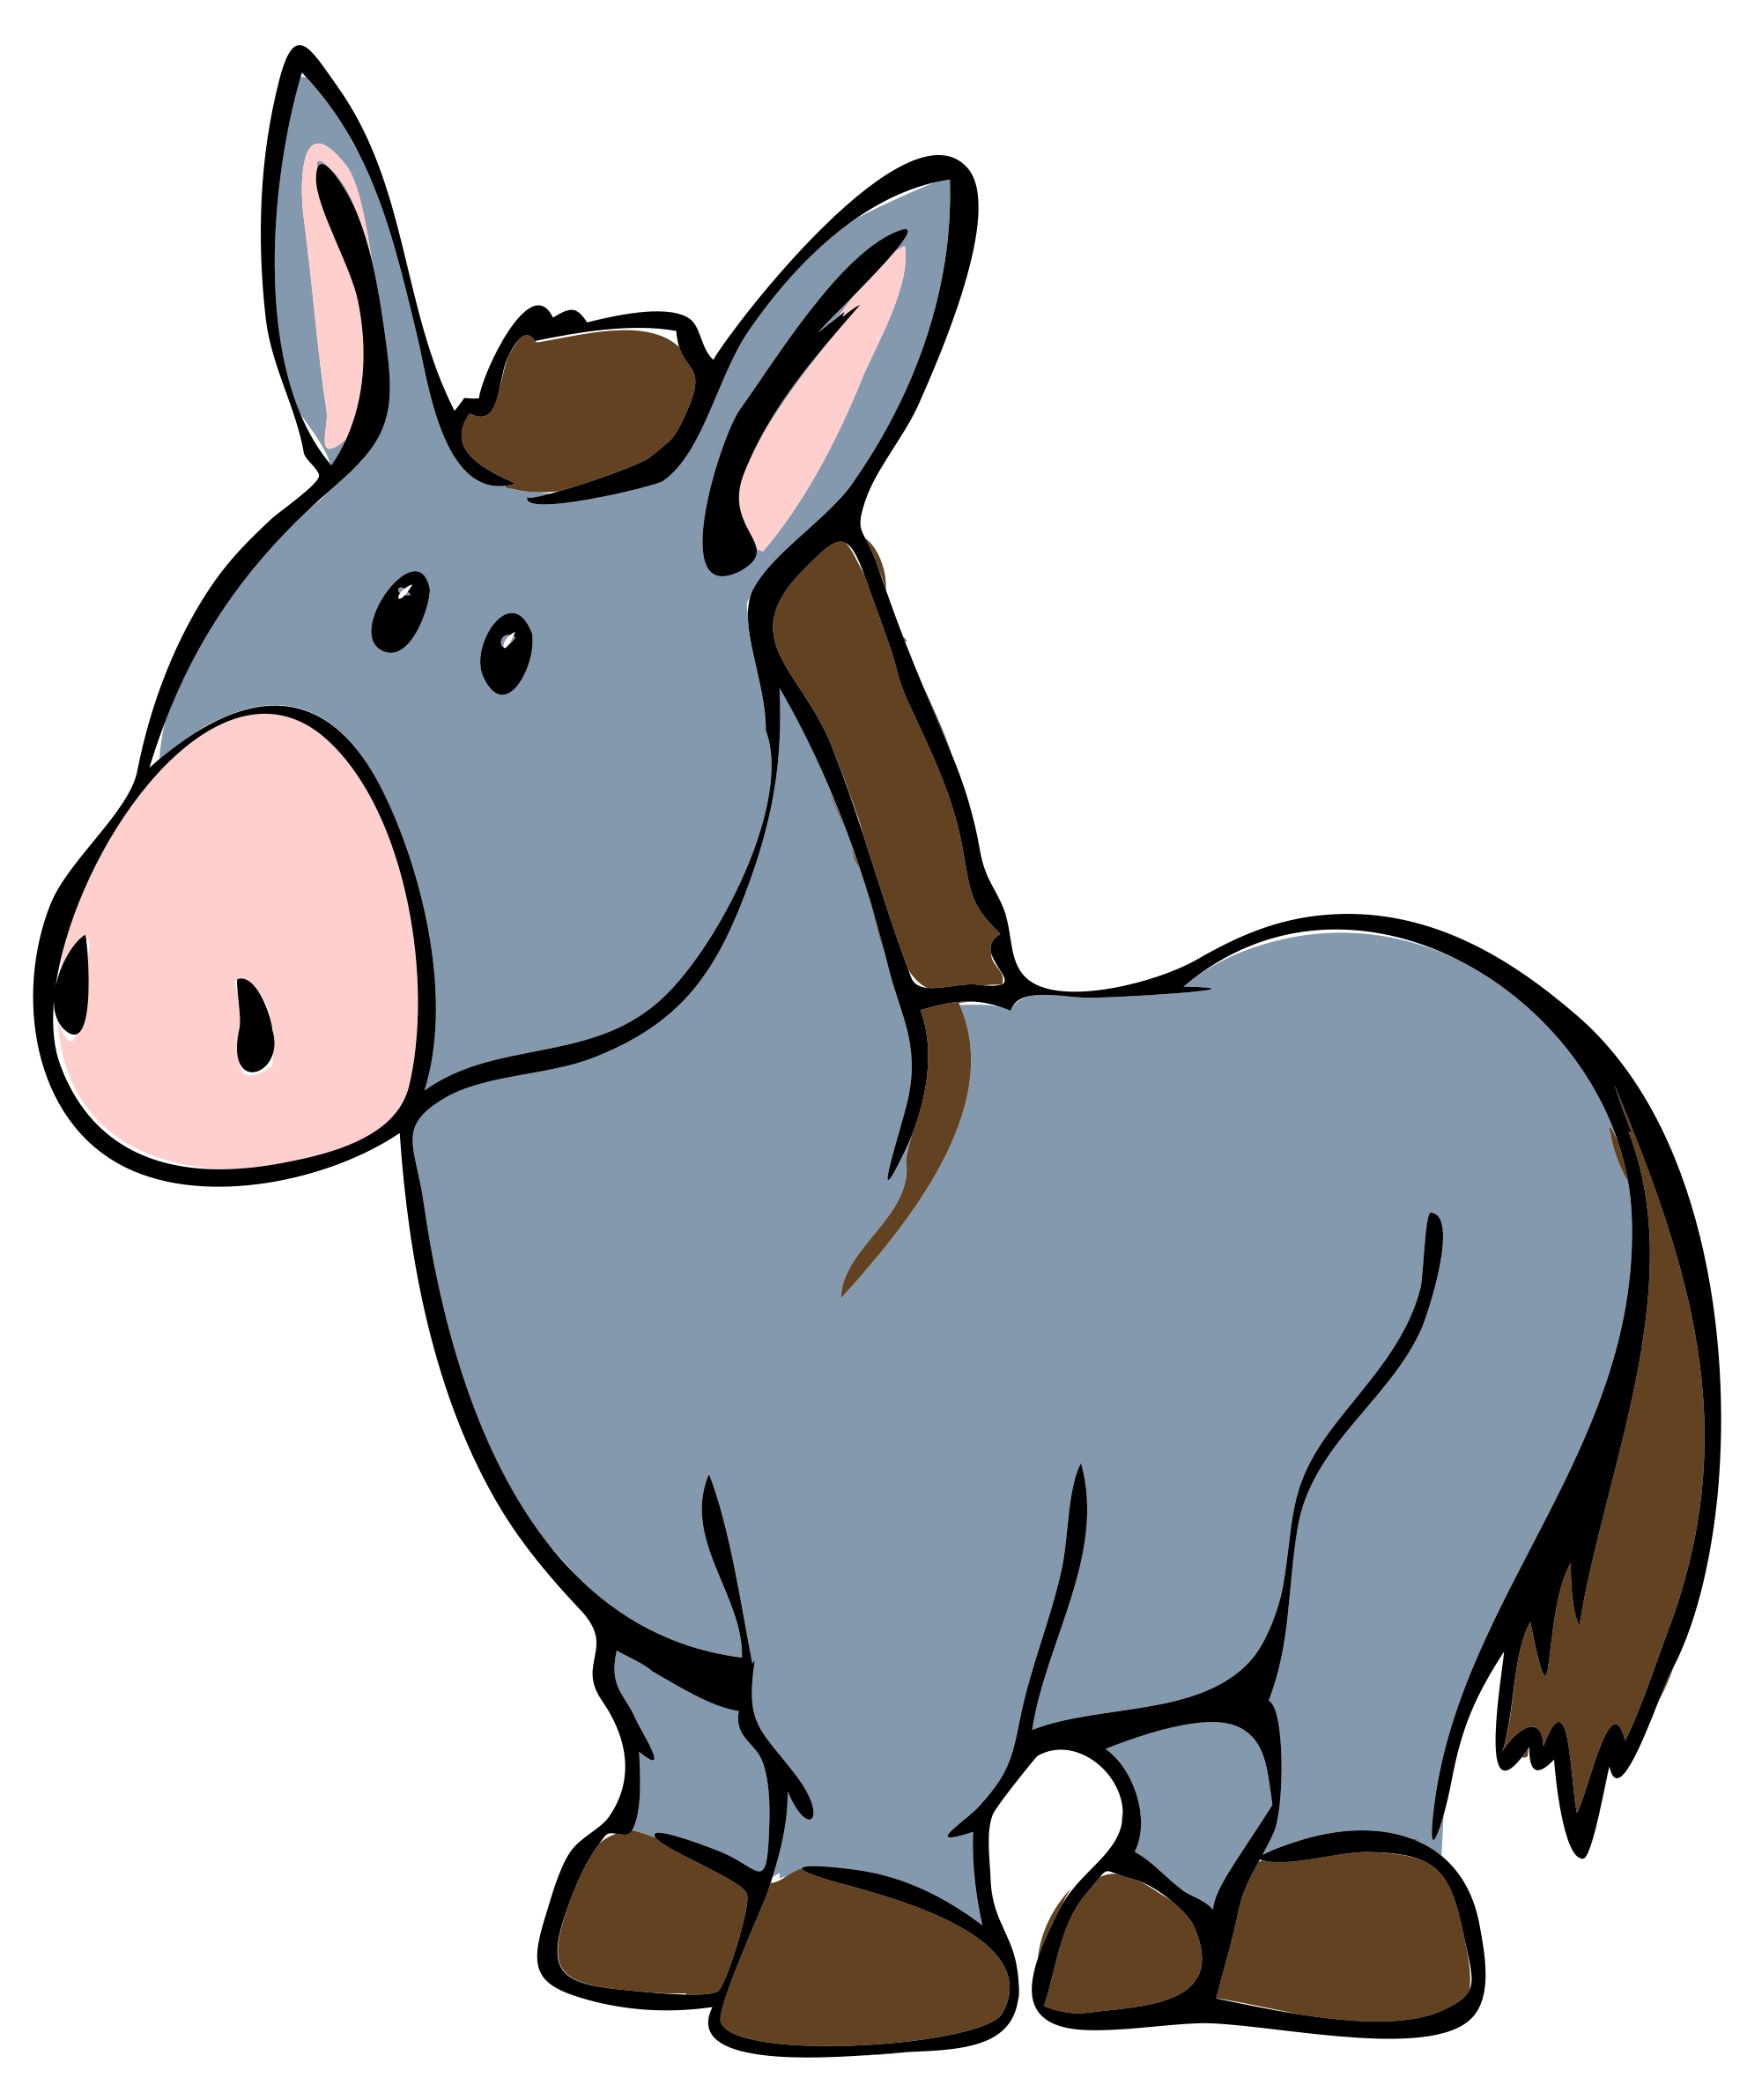 Donkey svg #3, Download drawings